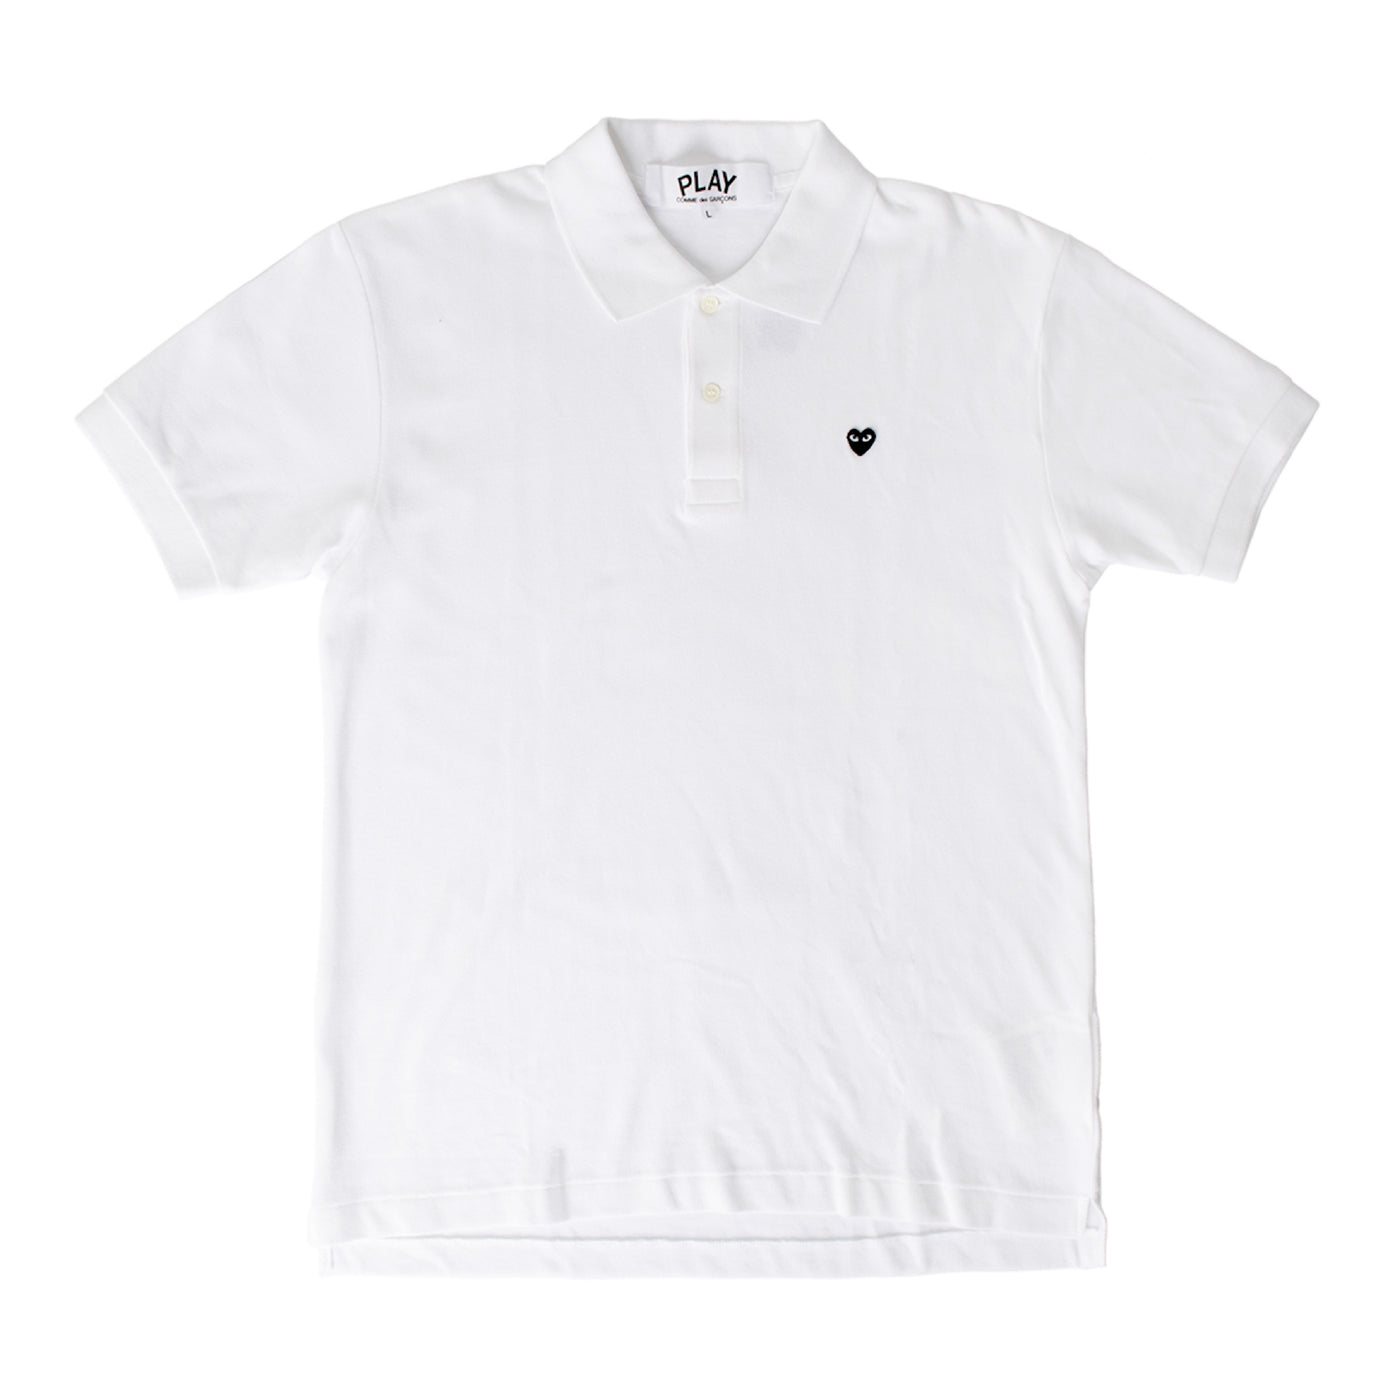 Load image into Gallery viewer, COMME DES GARCONS PLAY POLO T-SHIRT WHITE